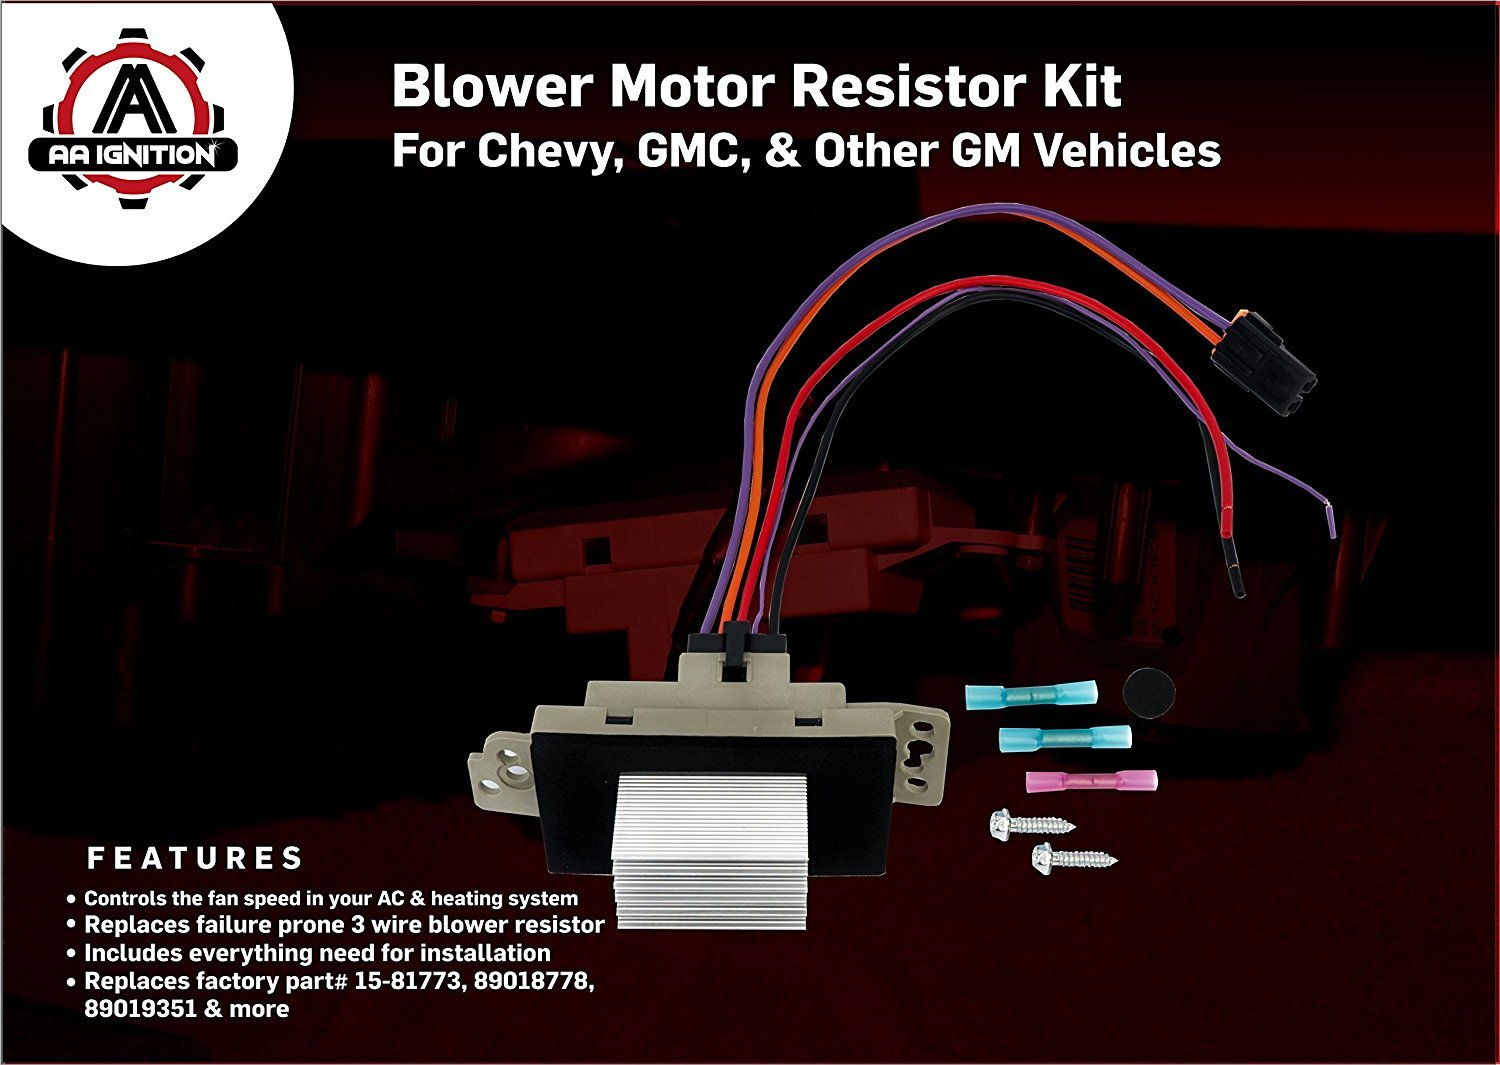 Blower Motor Resistor Complete Kit With Harness 2000 Gmc Sierra Wiring Diagram Replaces 15 81773 89018778 89019351 1581773 Fits Chevy Silverado Tahoe